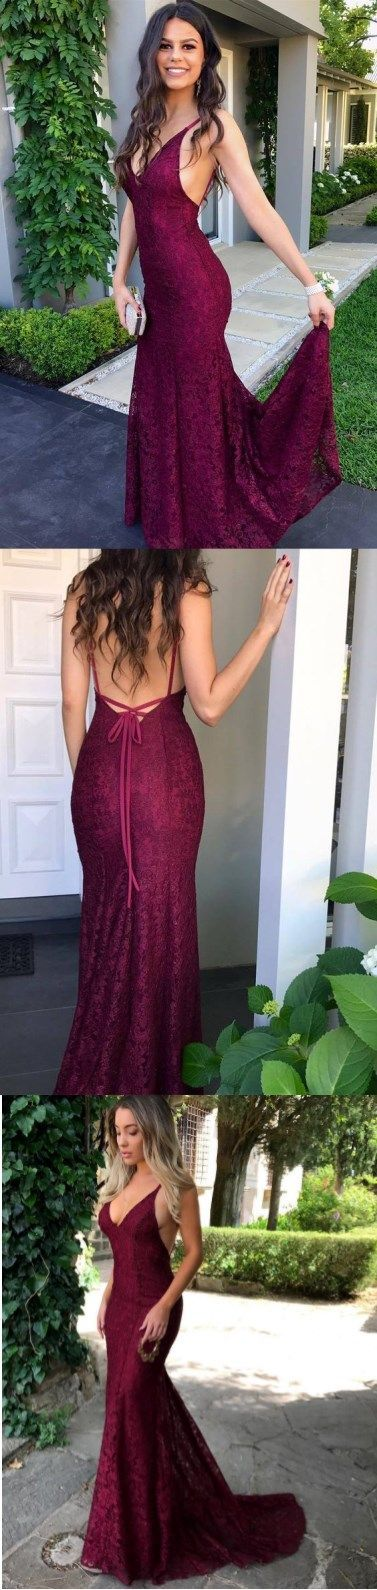 Gorgeous V Neck Burgundy Mermaid Long Prom Dress Graduation Dress Burgundy Lace Prom Dresses #burgundypromdresses #lacepromdresses #prom #dresses #longpromdress #promdress #eveningdress #promdresses #partydresses #2018promdresses #Graduationdresses